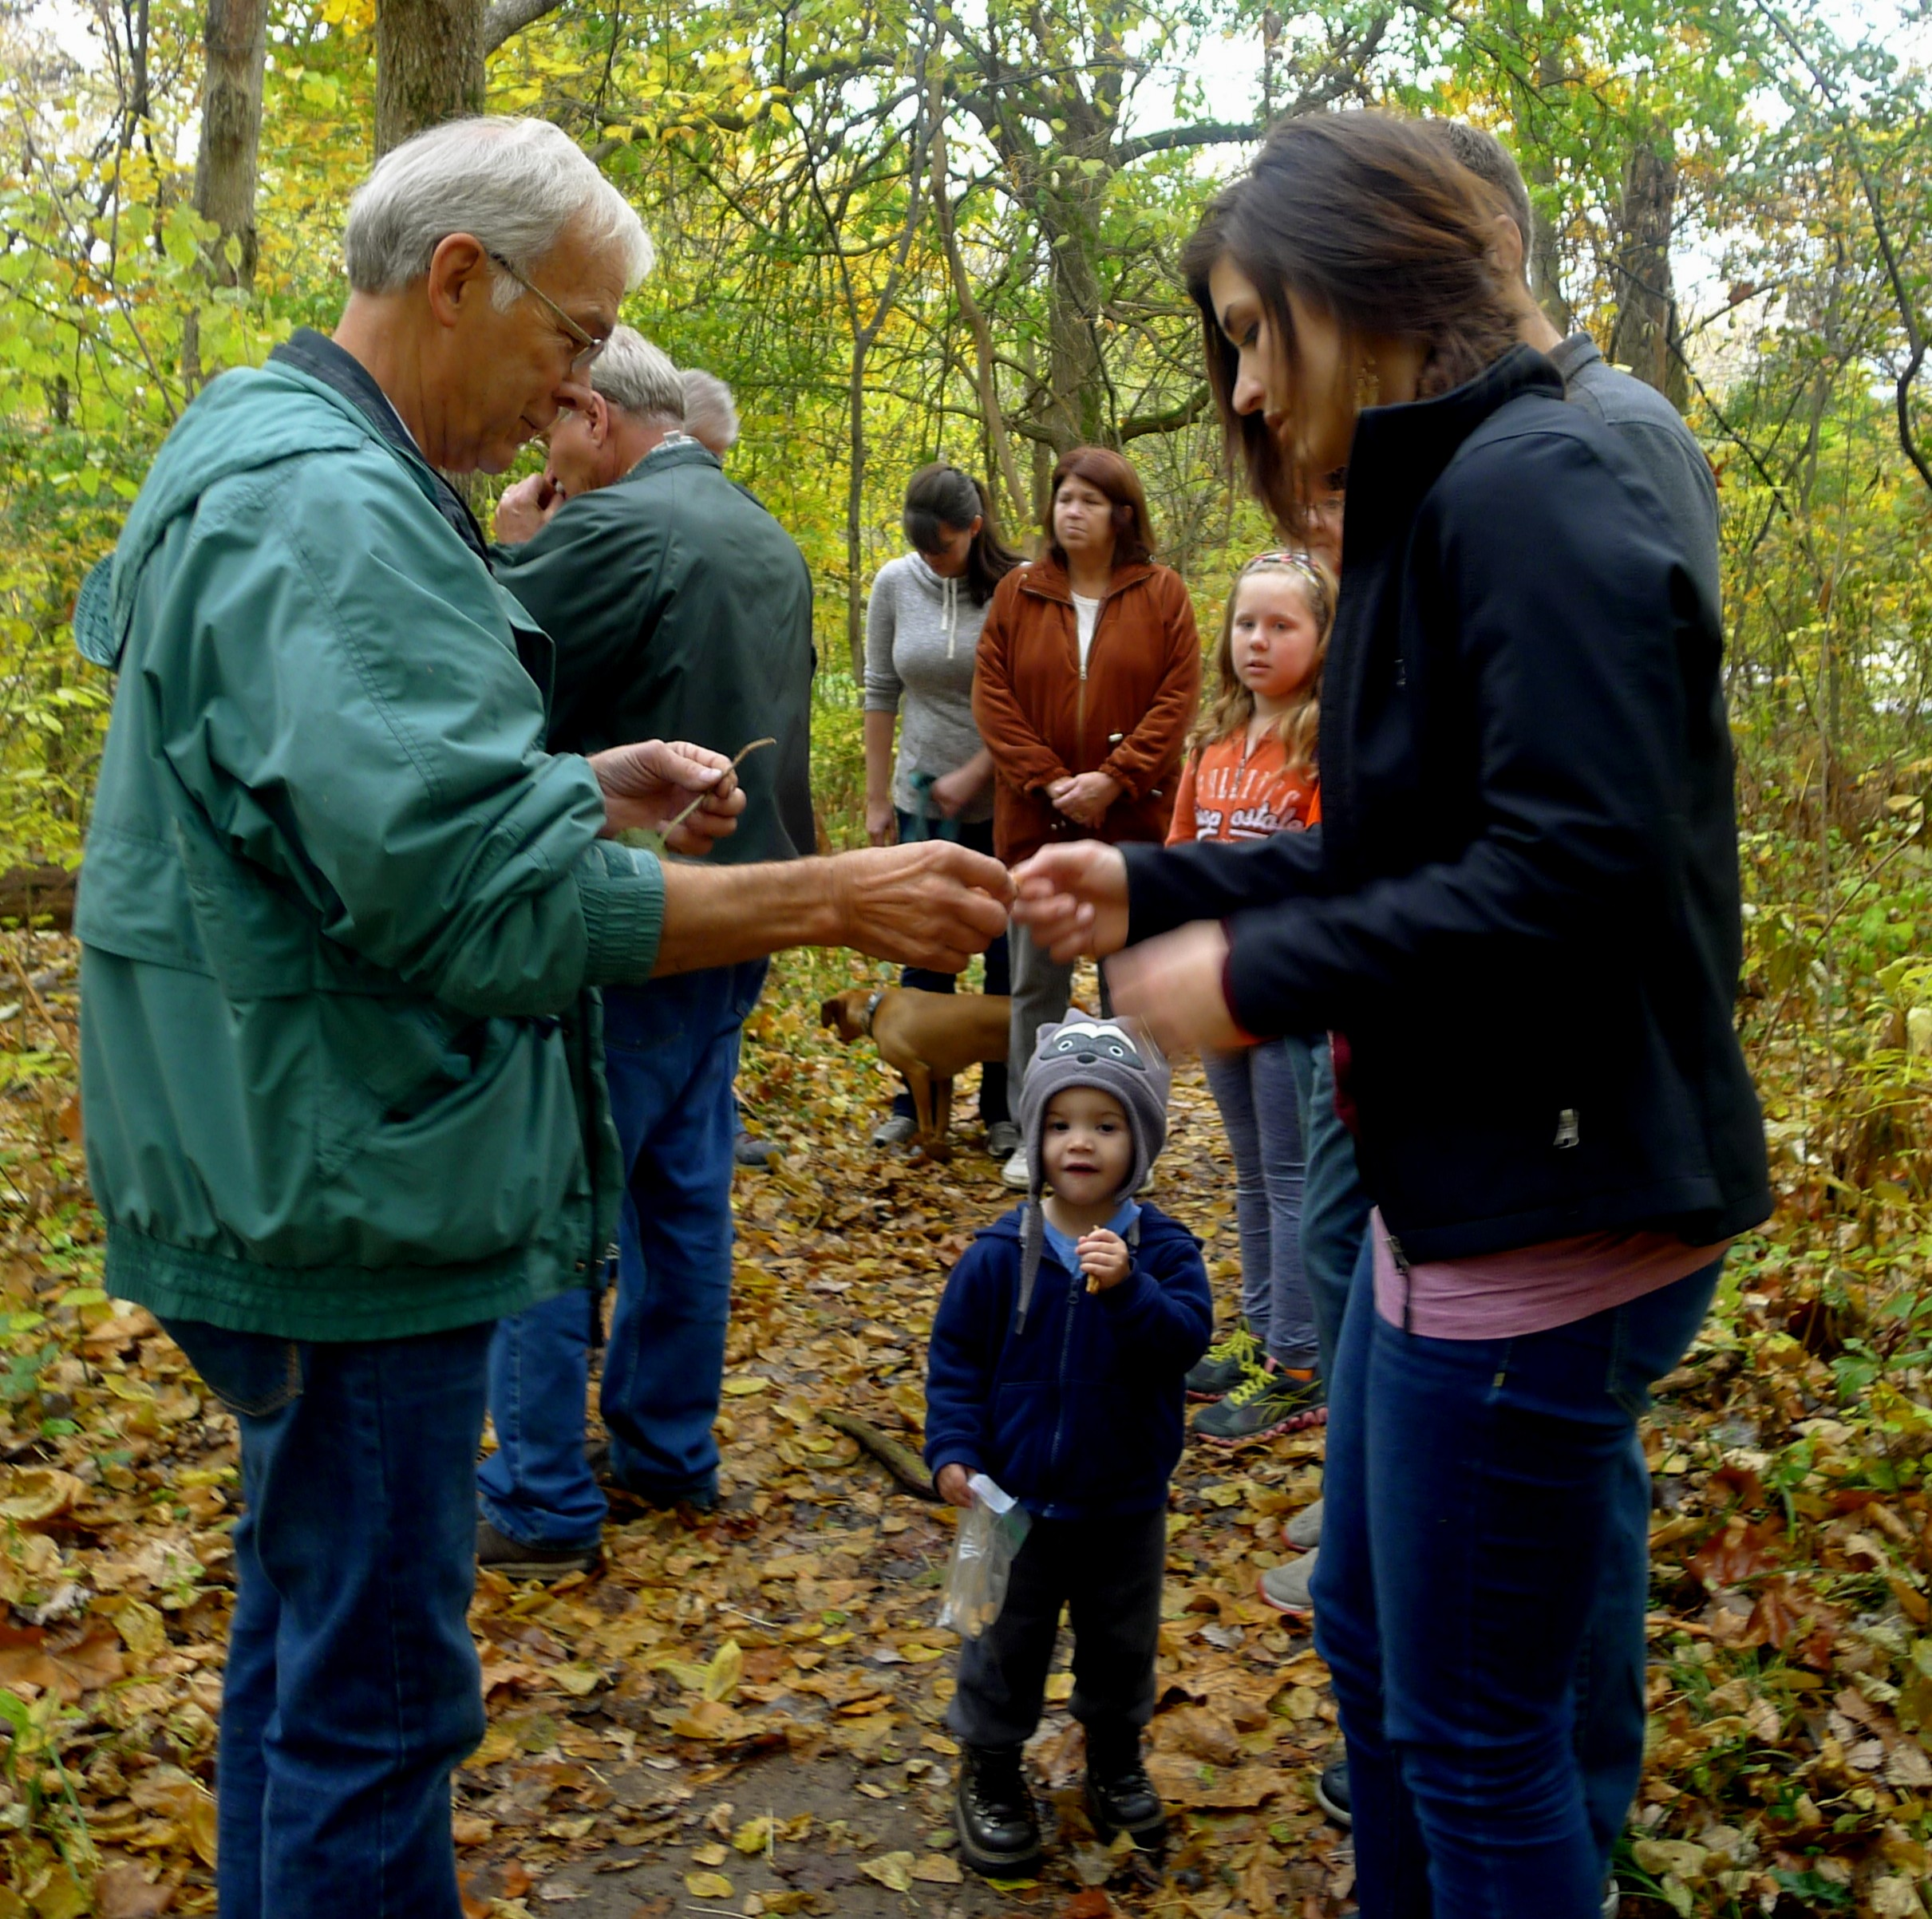 Luke Hunt, a certified naturalist in Indiana, leads the 2015 fall interpretive hike attendees through Heritage Trail in Winona Lake, noting natural features found along the trail.